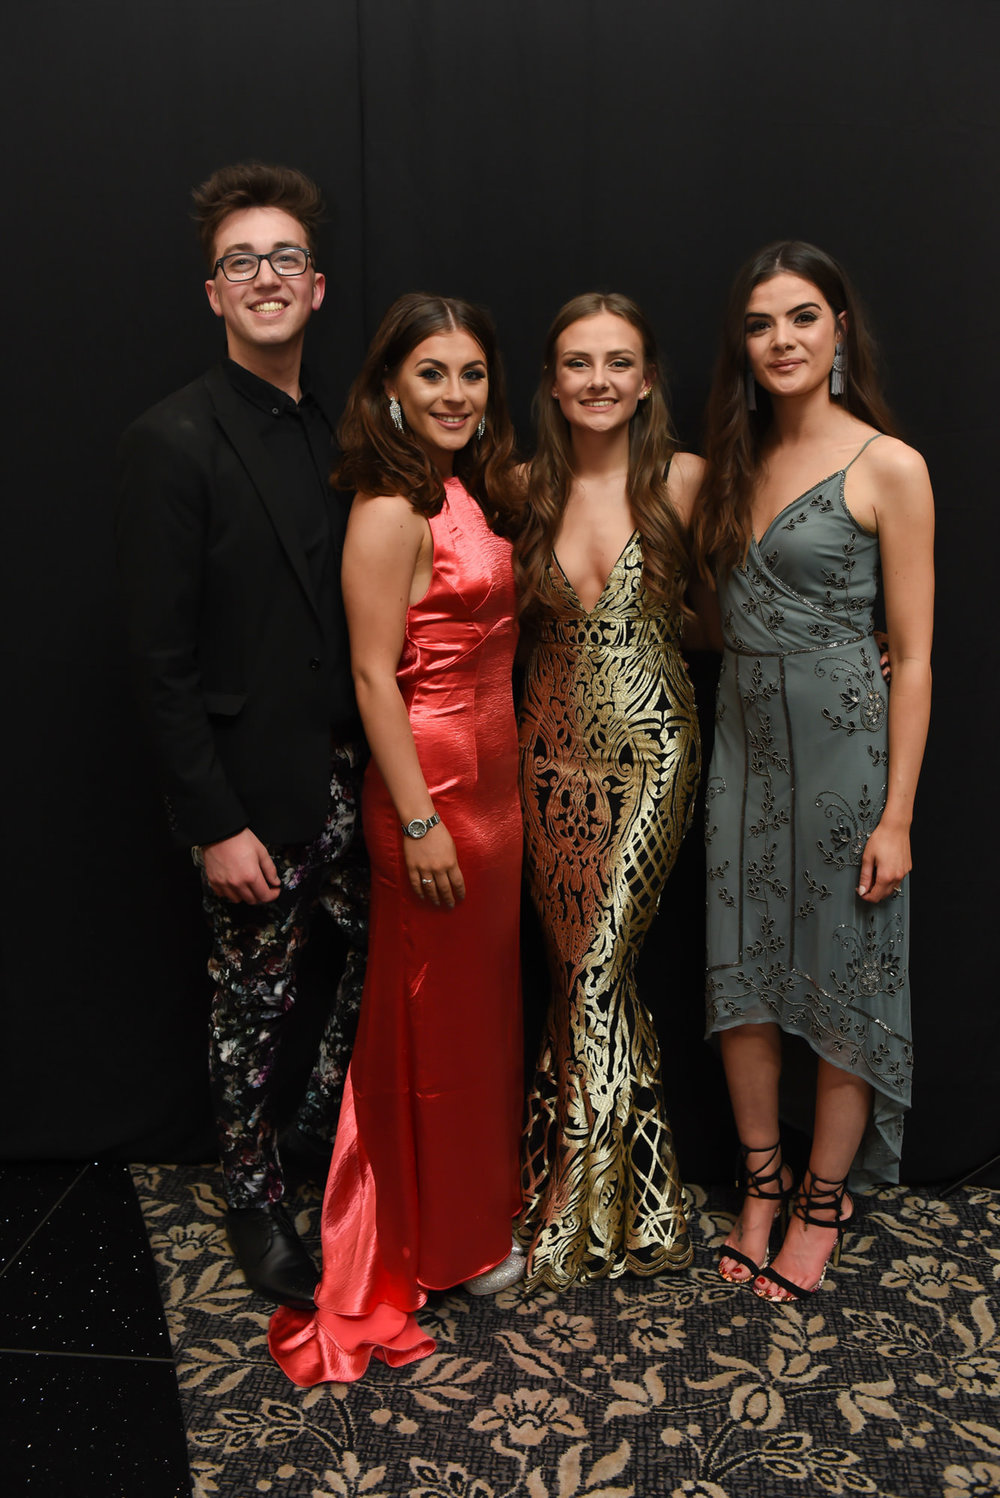 UCLAN_MT_BALL2018_95.jpg